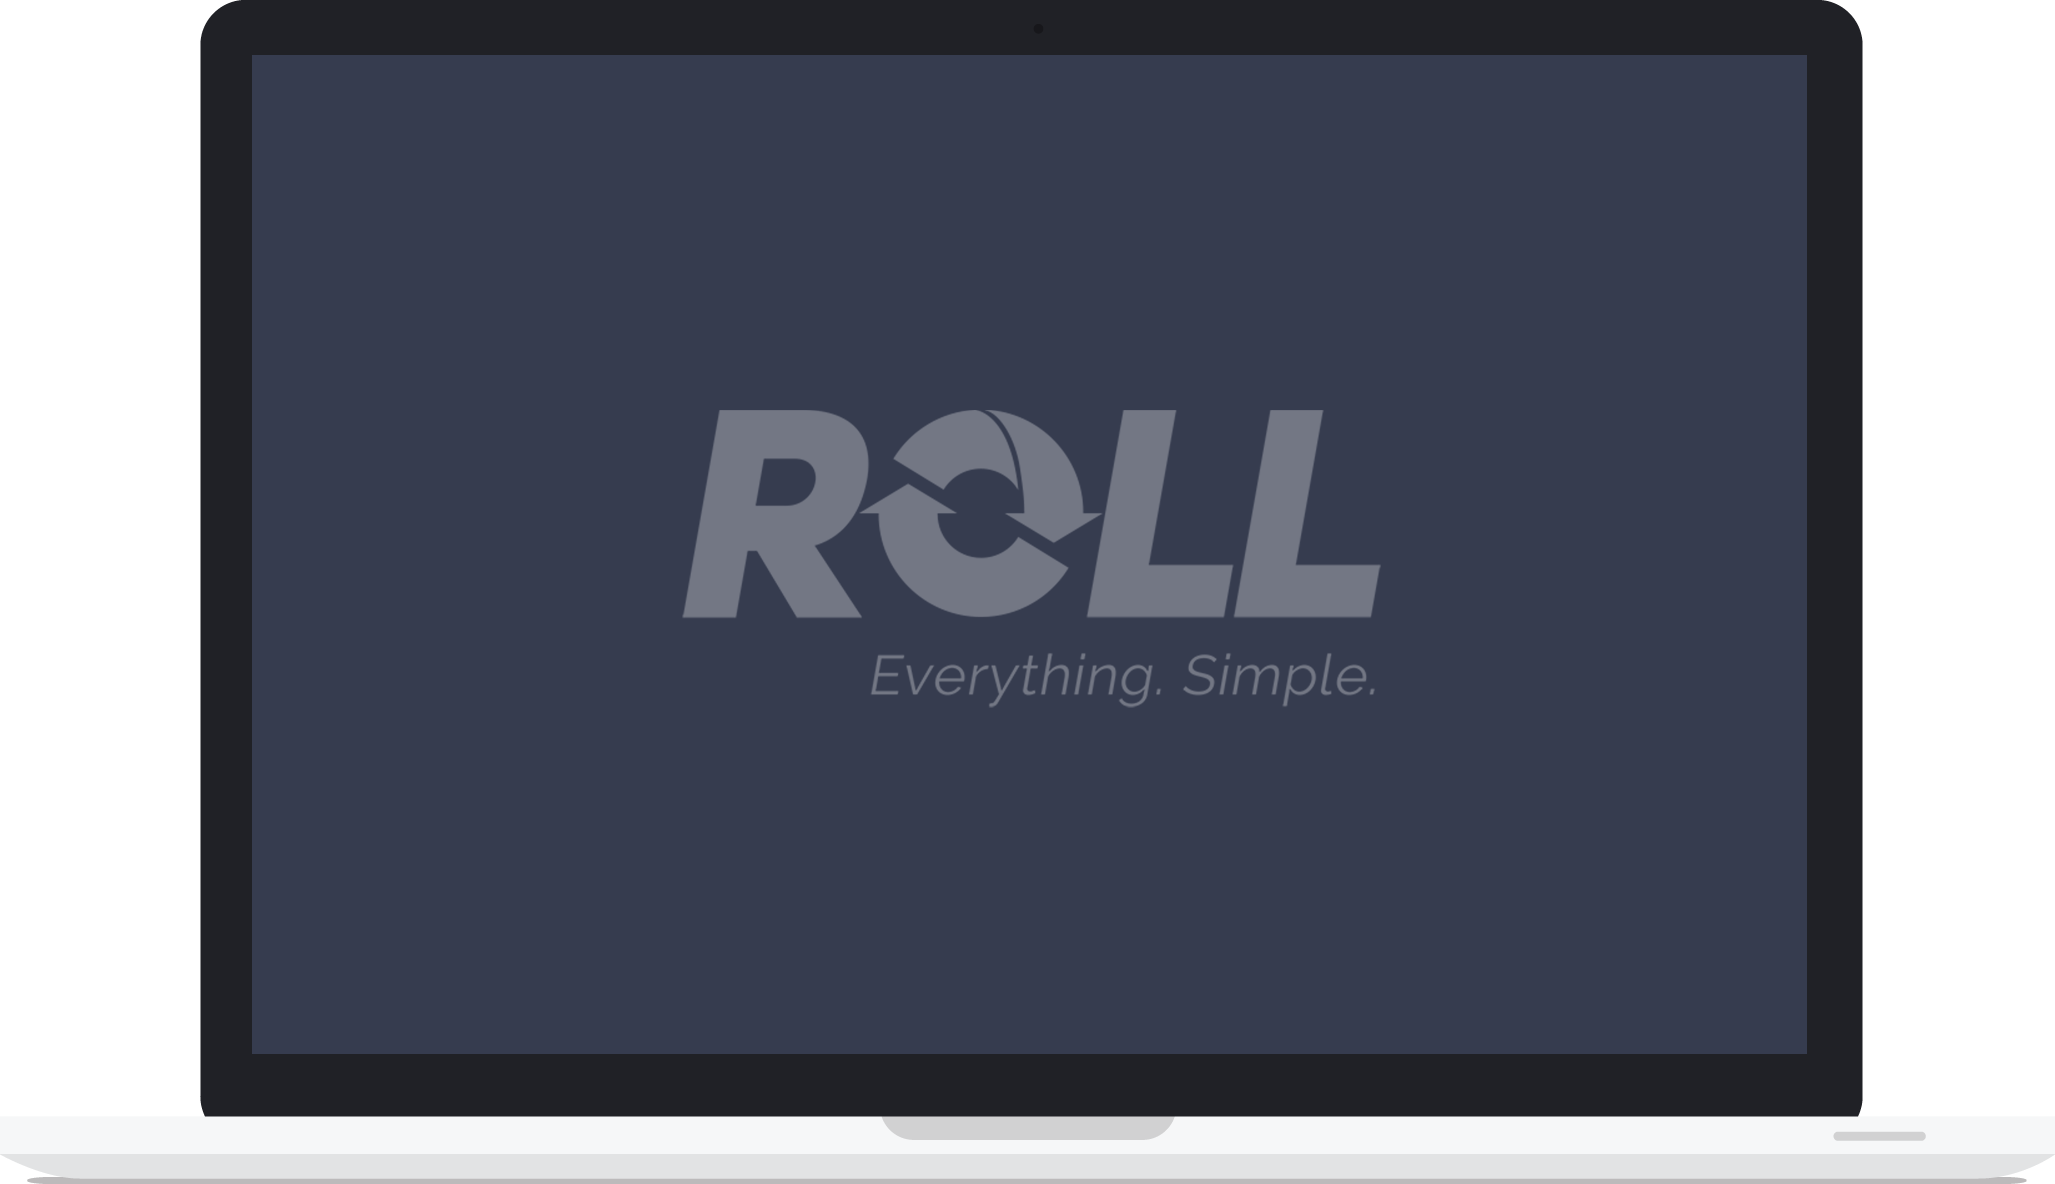 Laptop with Roll logo on the screen